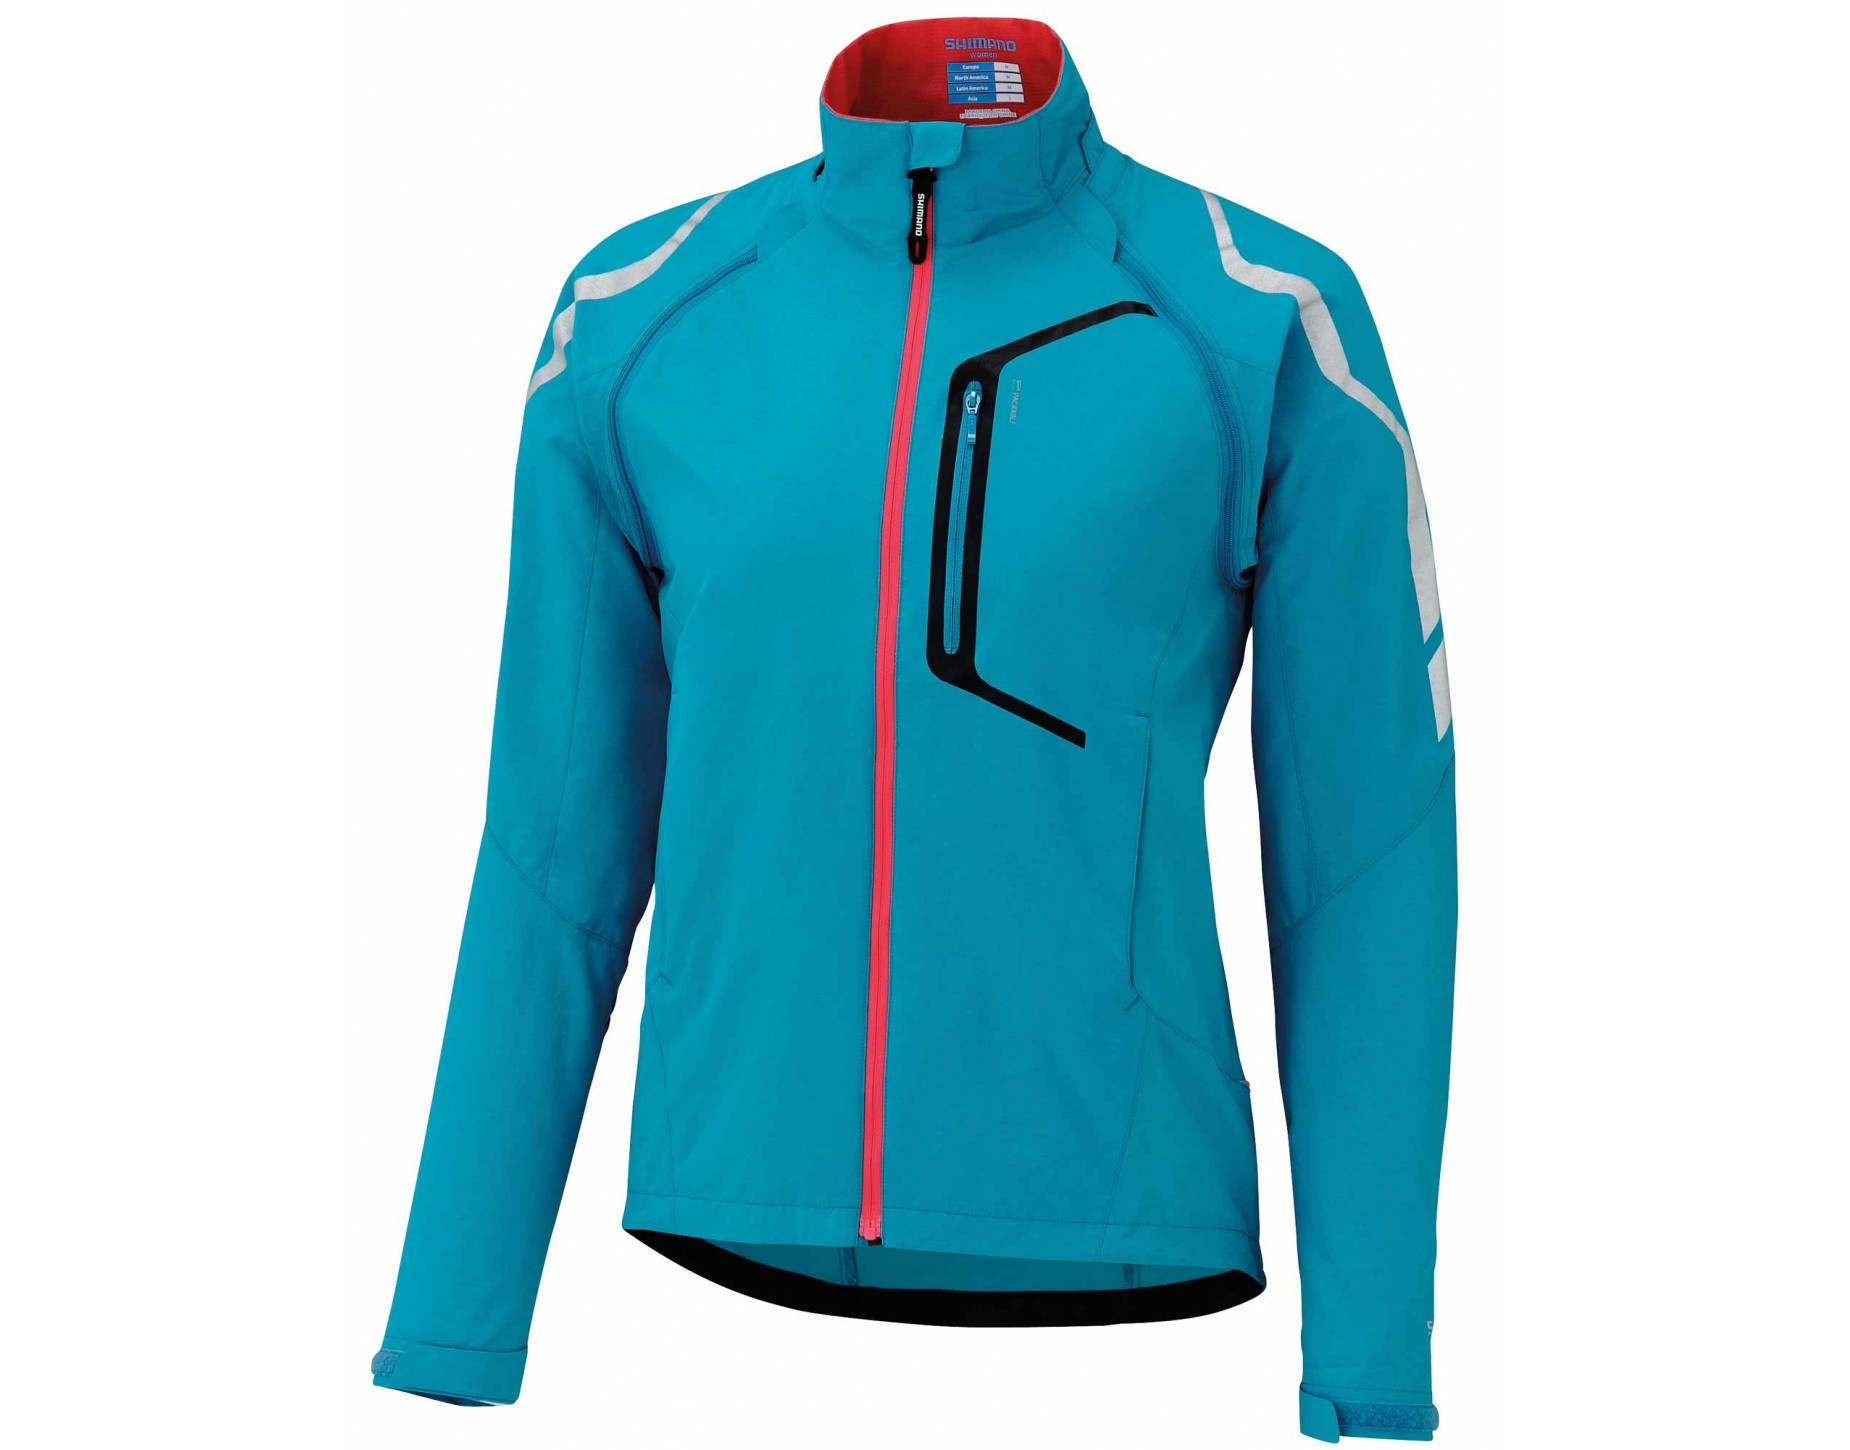 shimano hybrid women s windproof cycling jacket. Black Bedroom Furniture Sets. Home Design Ideas